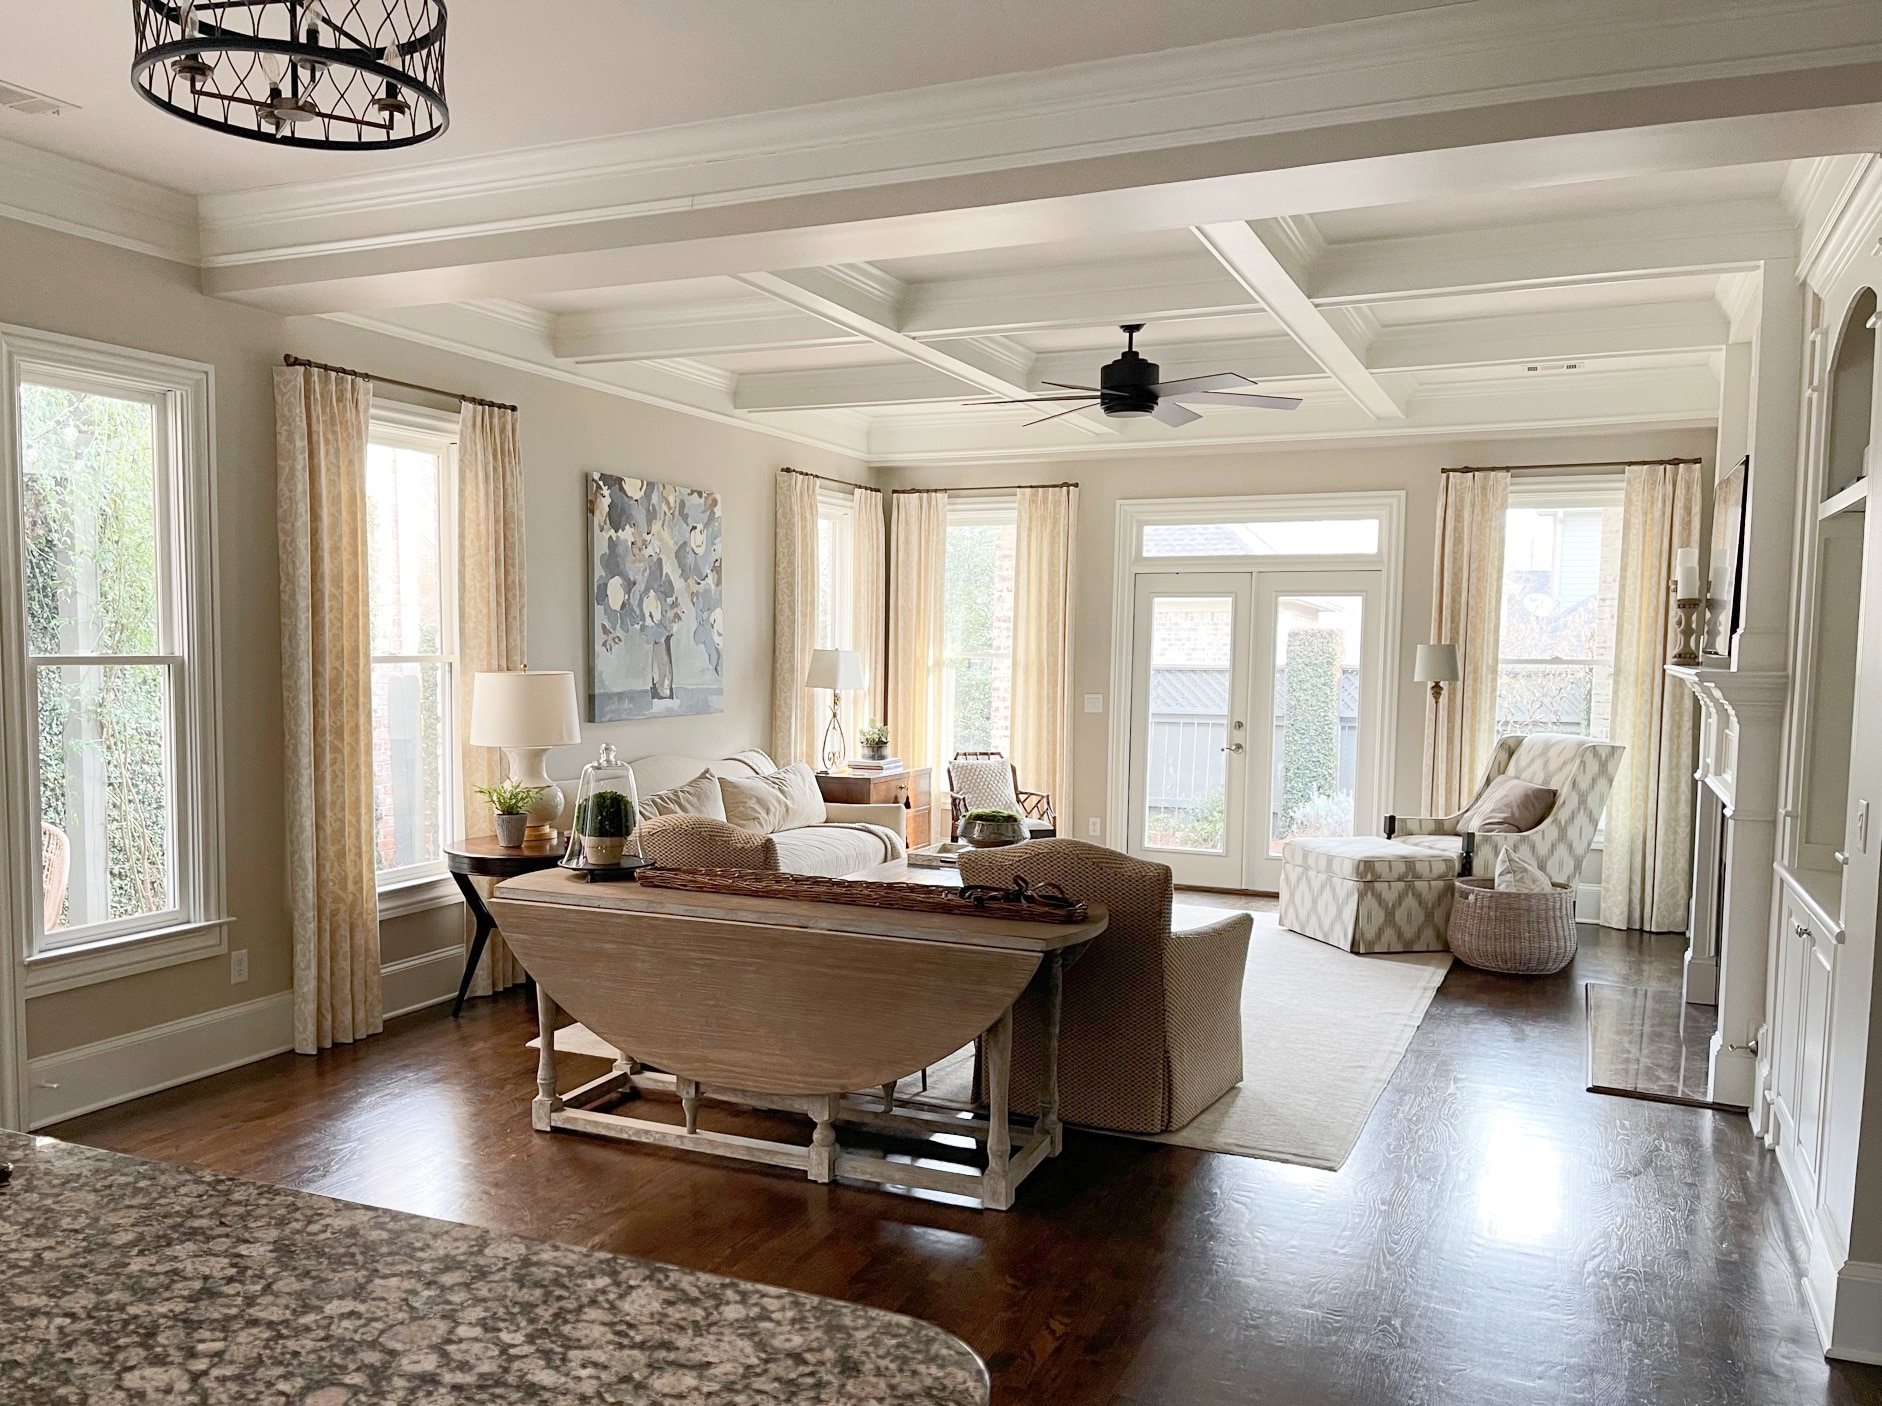 Best beige paint, Accessible Beige by Sherwin. Living room, coffered ceilings, wood floor. Kylie M Interiors Edesign, diy decor. client photo